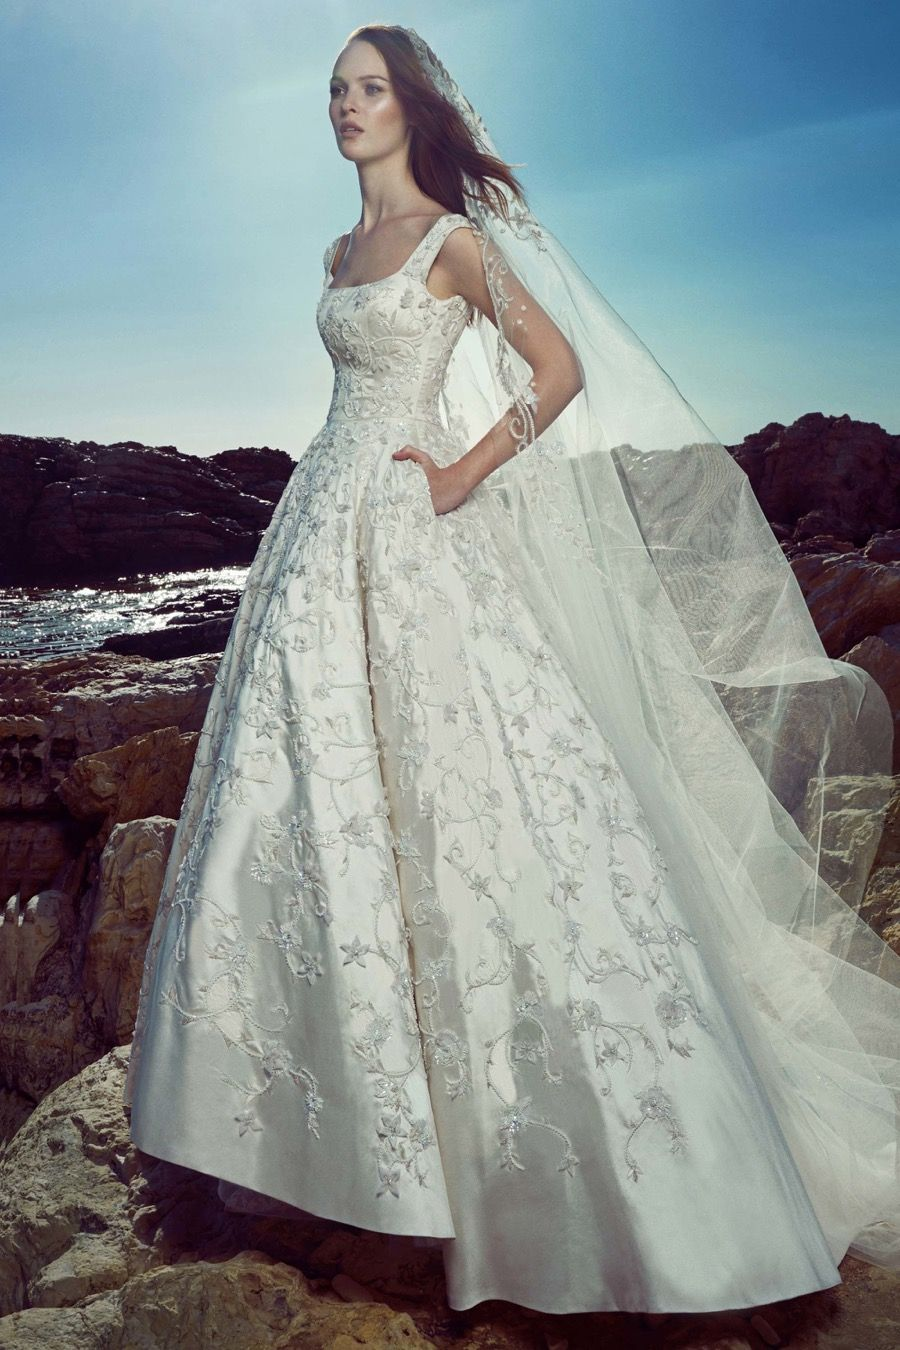 Zuhair Murad Spring Summer 2017 Bridal Collection Designer Wedding Dress Gown Available